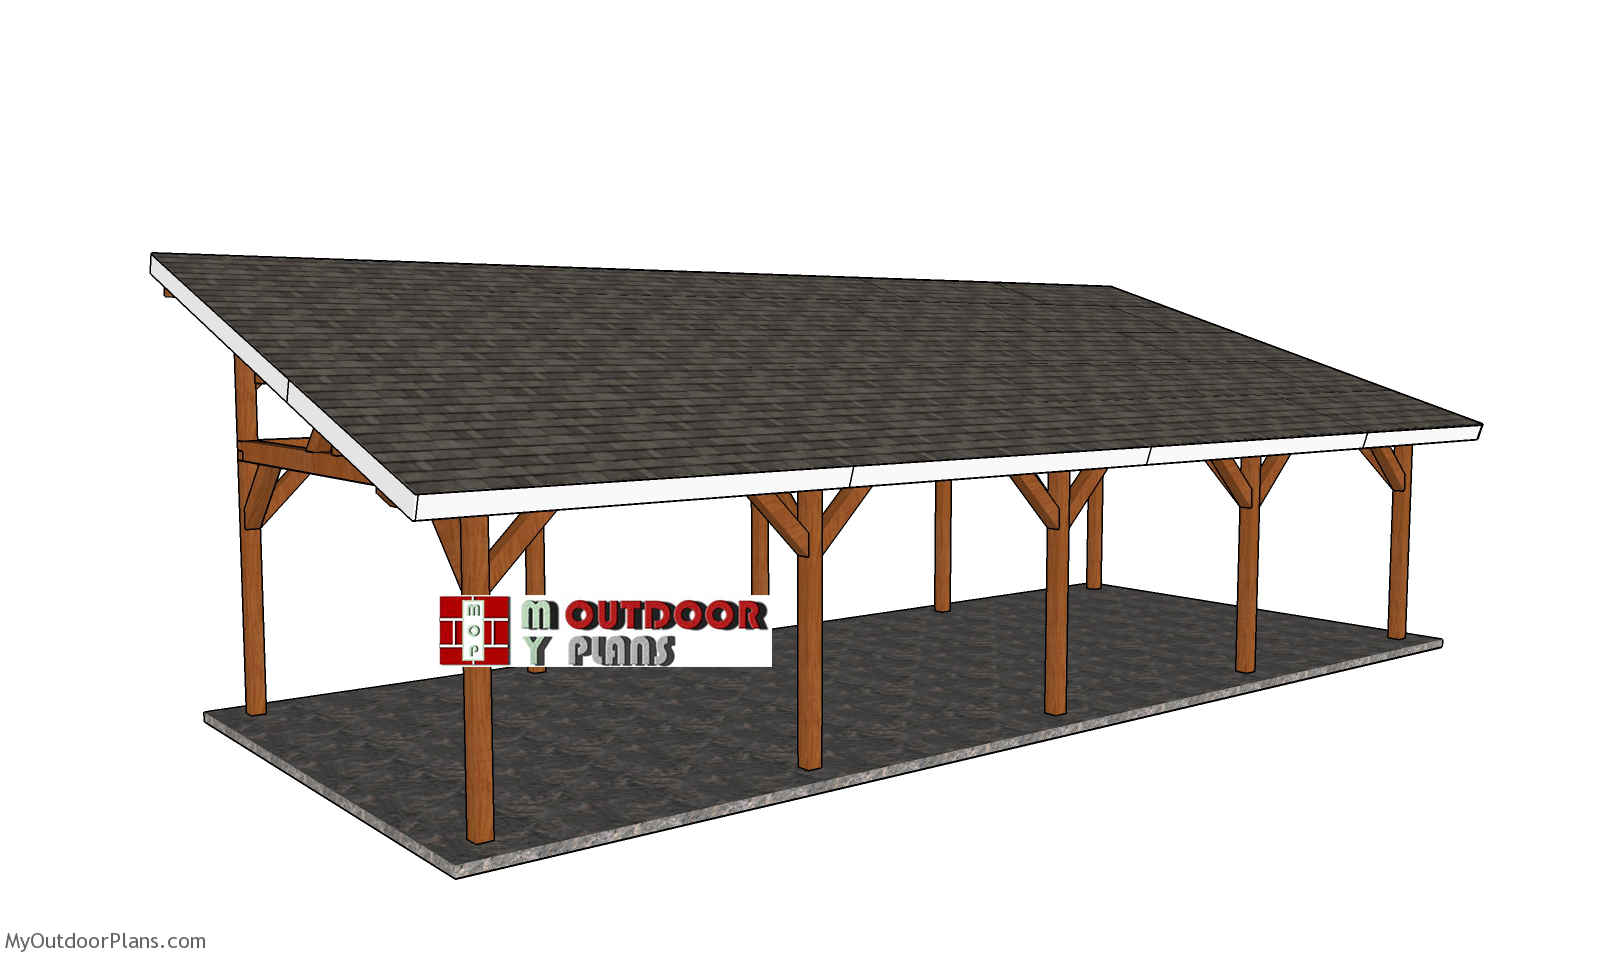 16x40 Lean to Pavilion Plans - Free DIY Tutorial